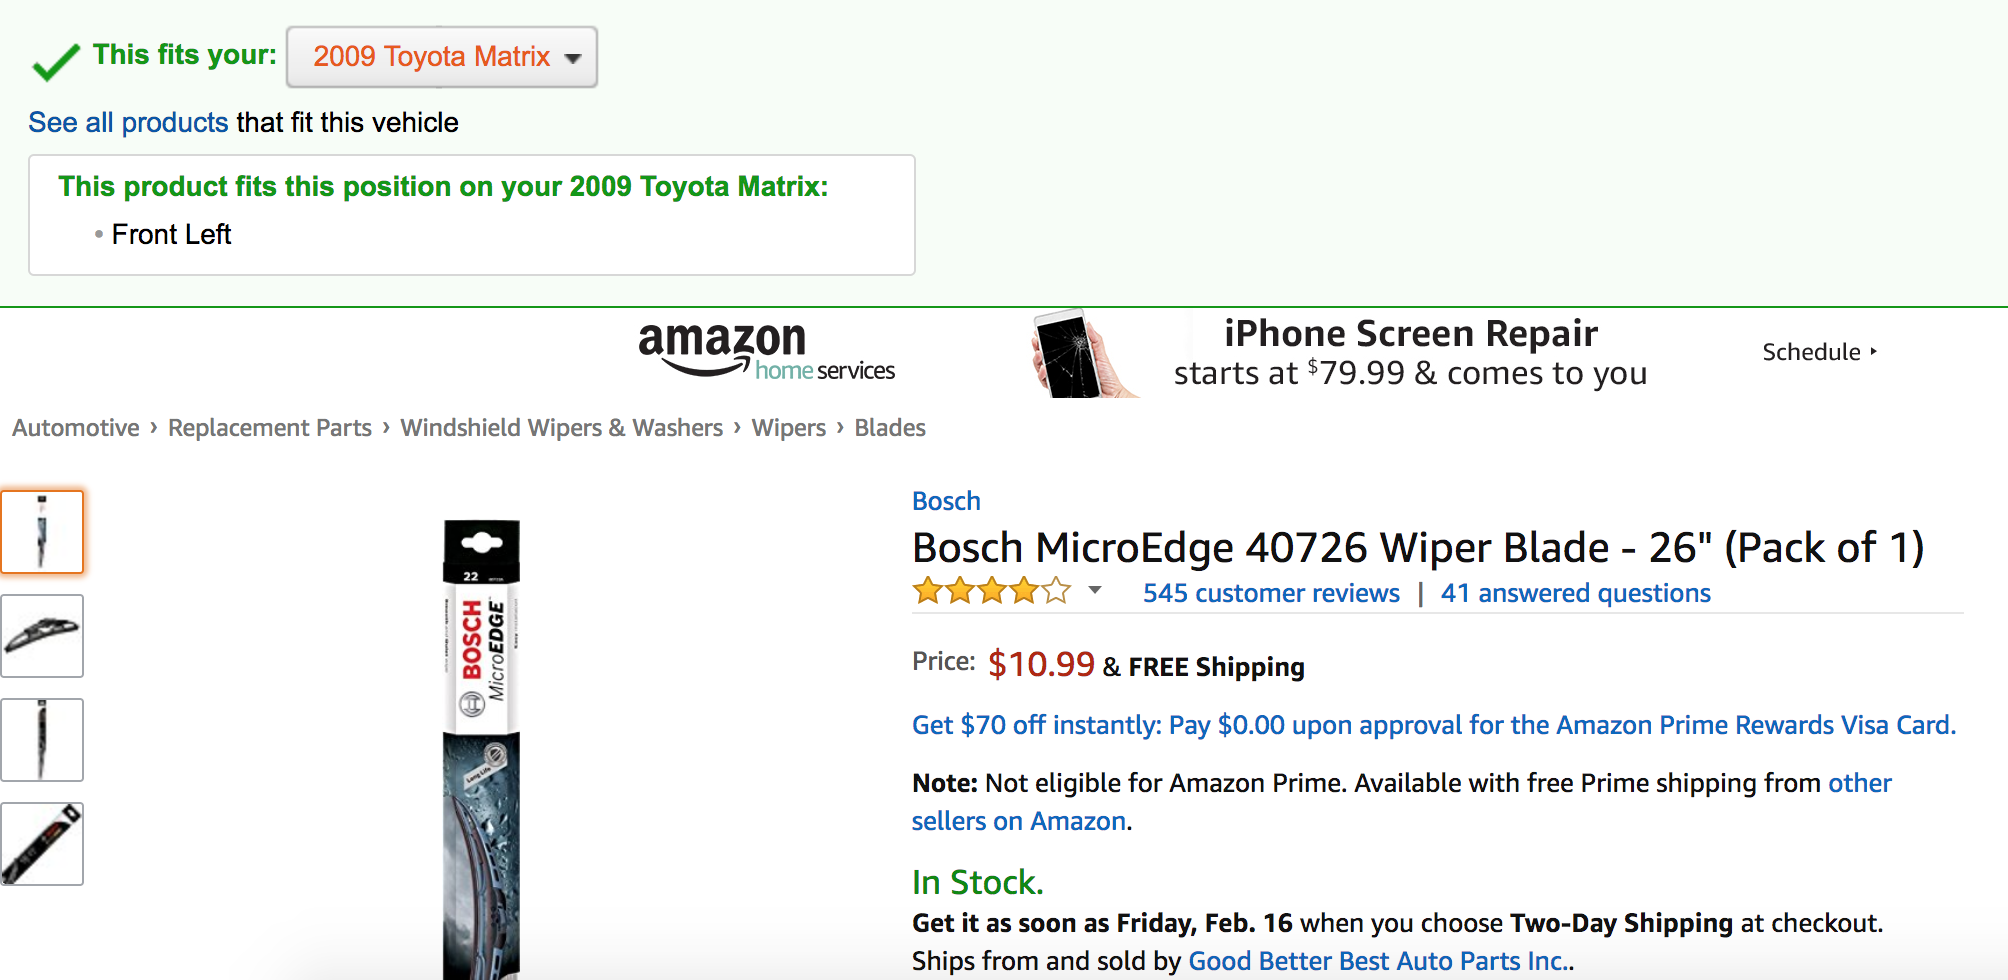 Buying bosch wiper blades from amazon.